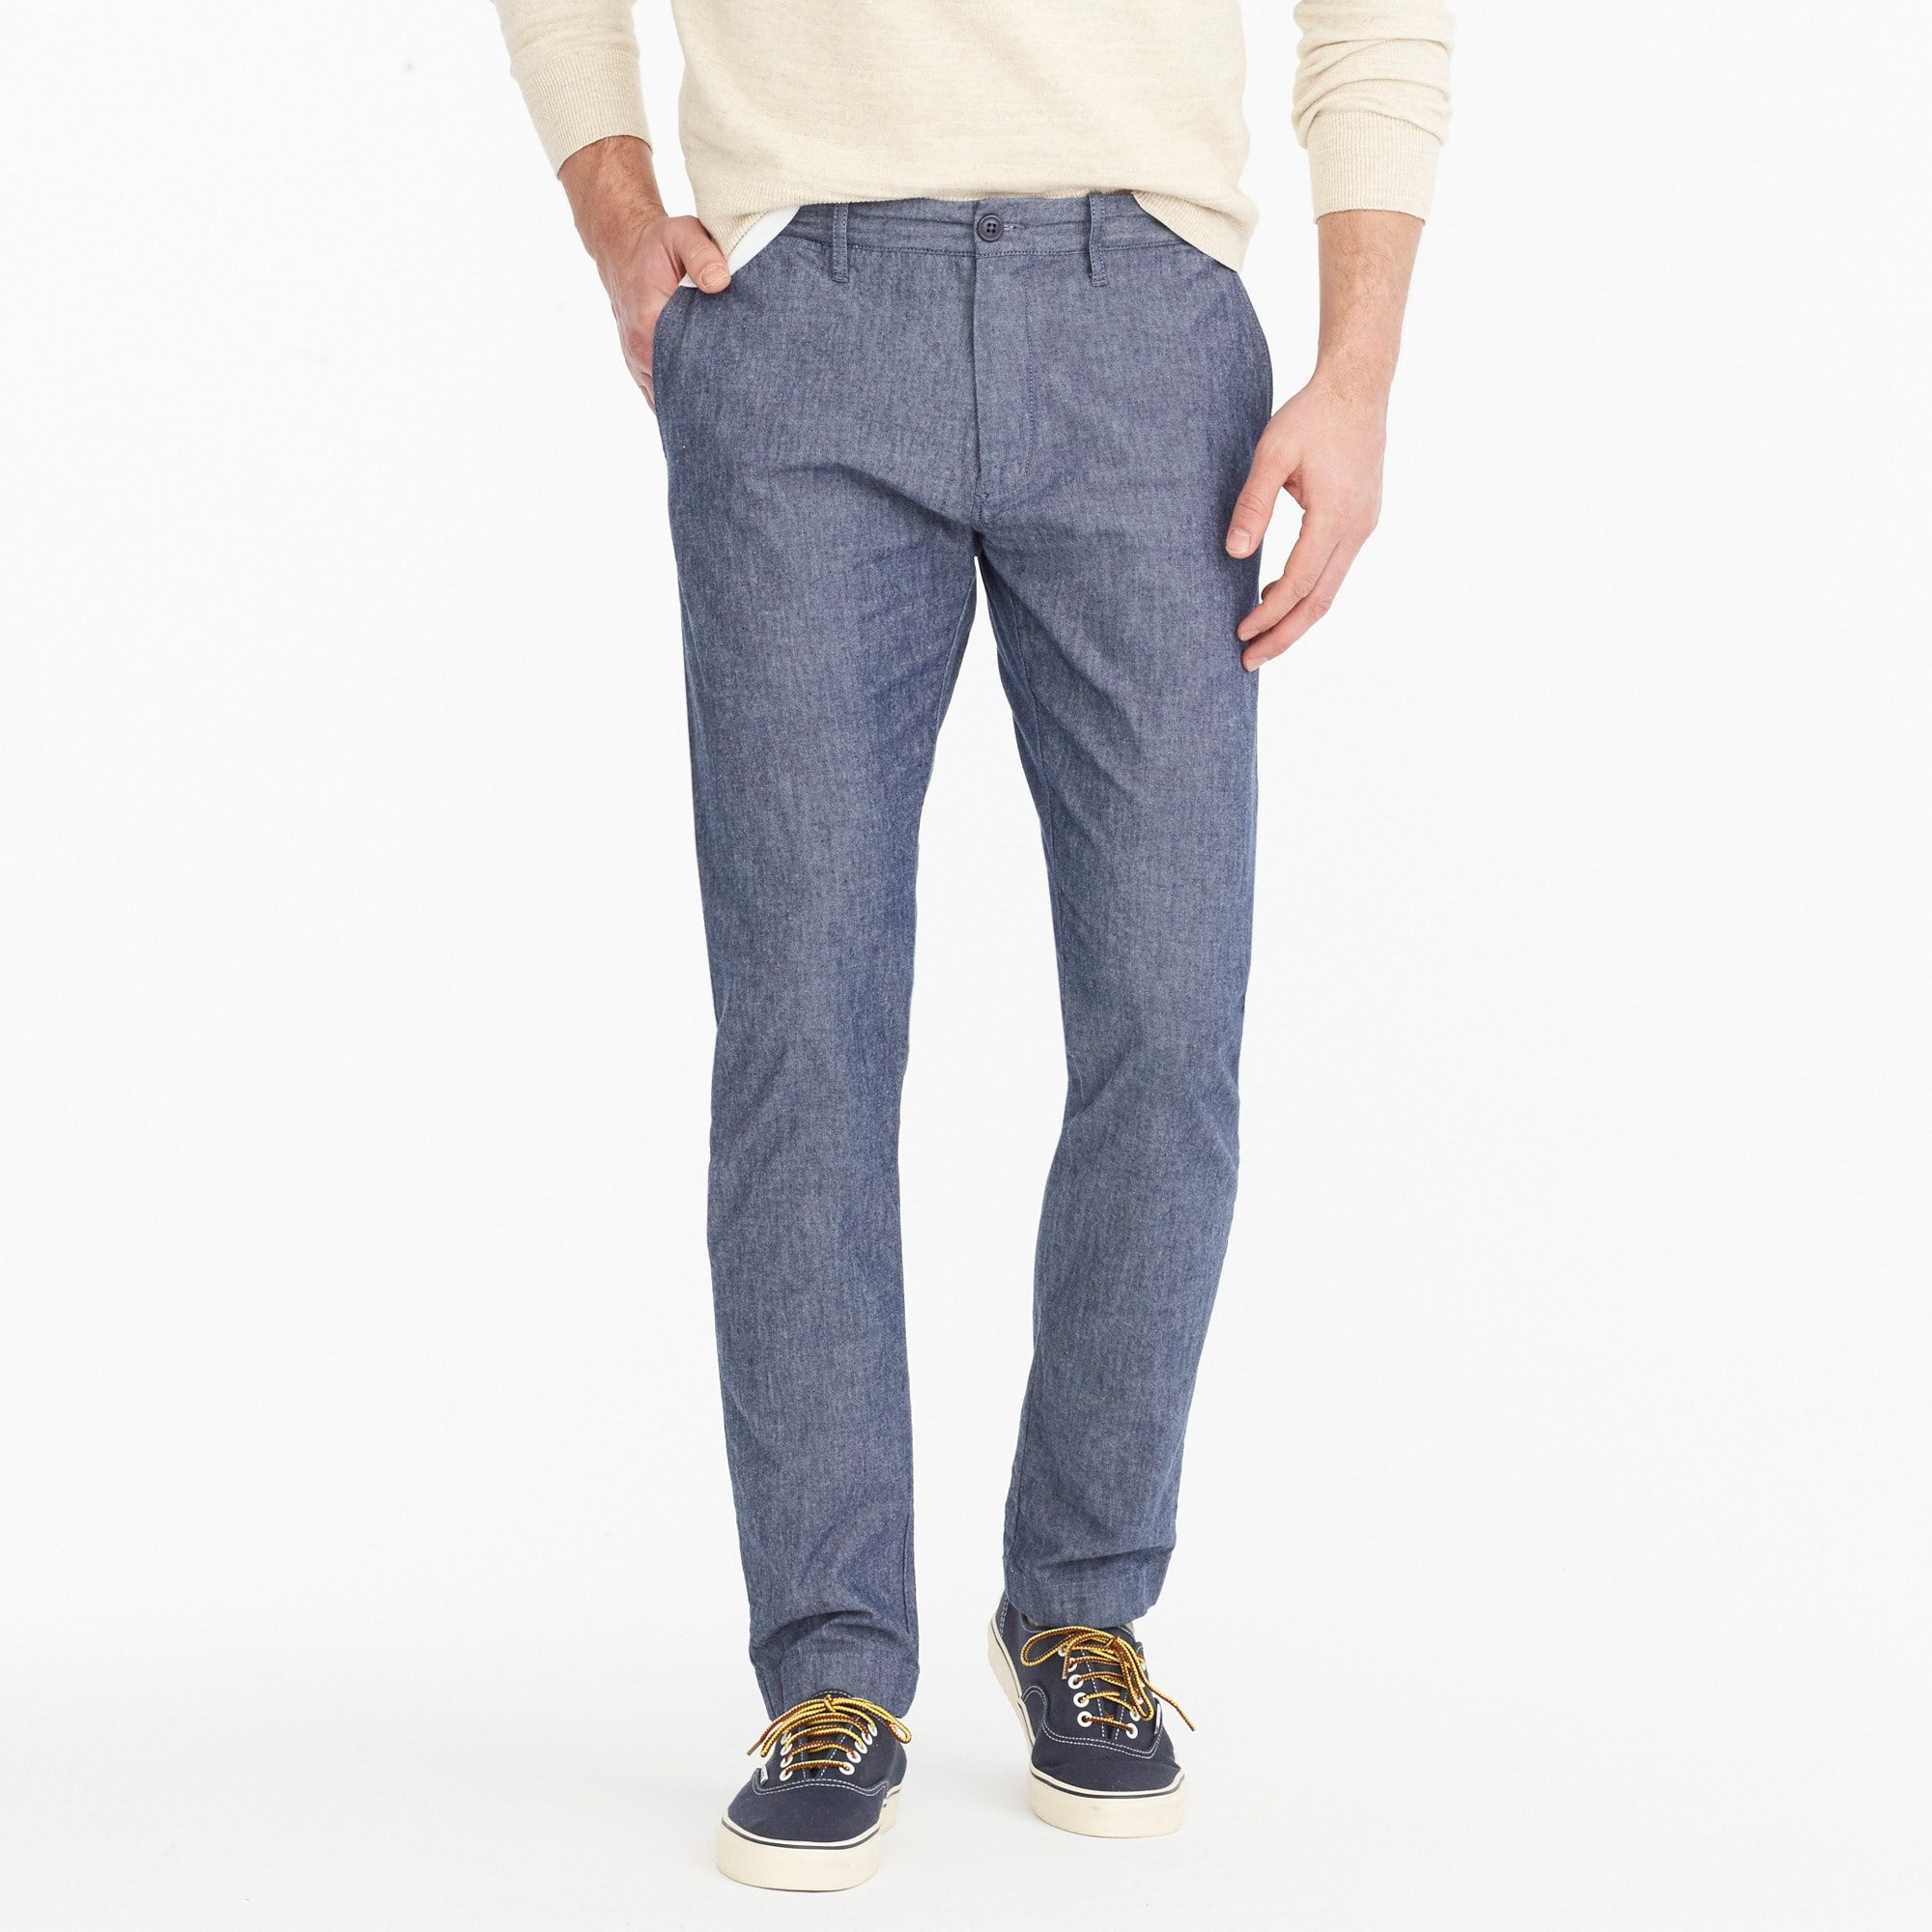 484 slim-fit pant in stretch blue chambray men pants c